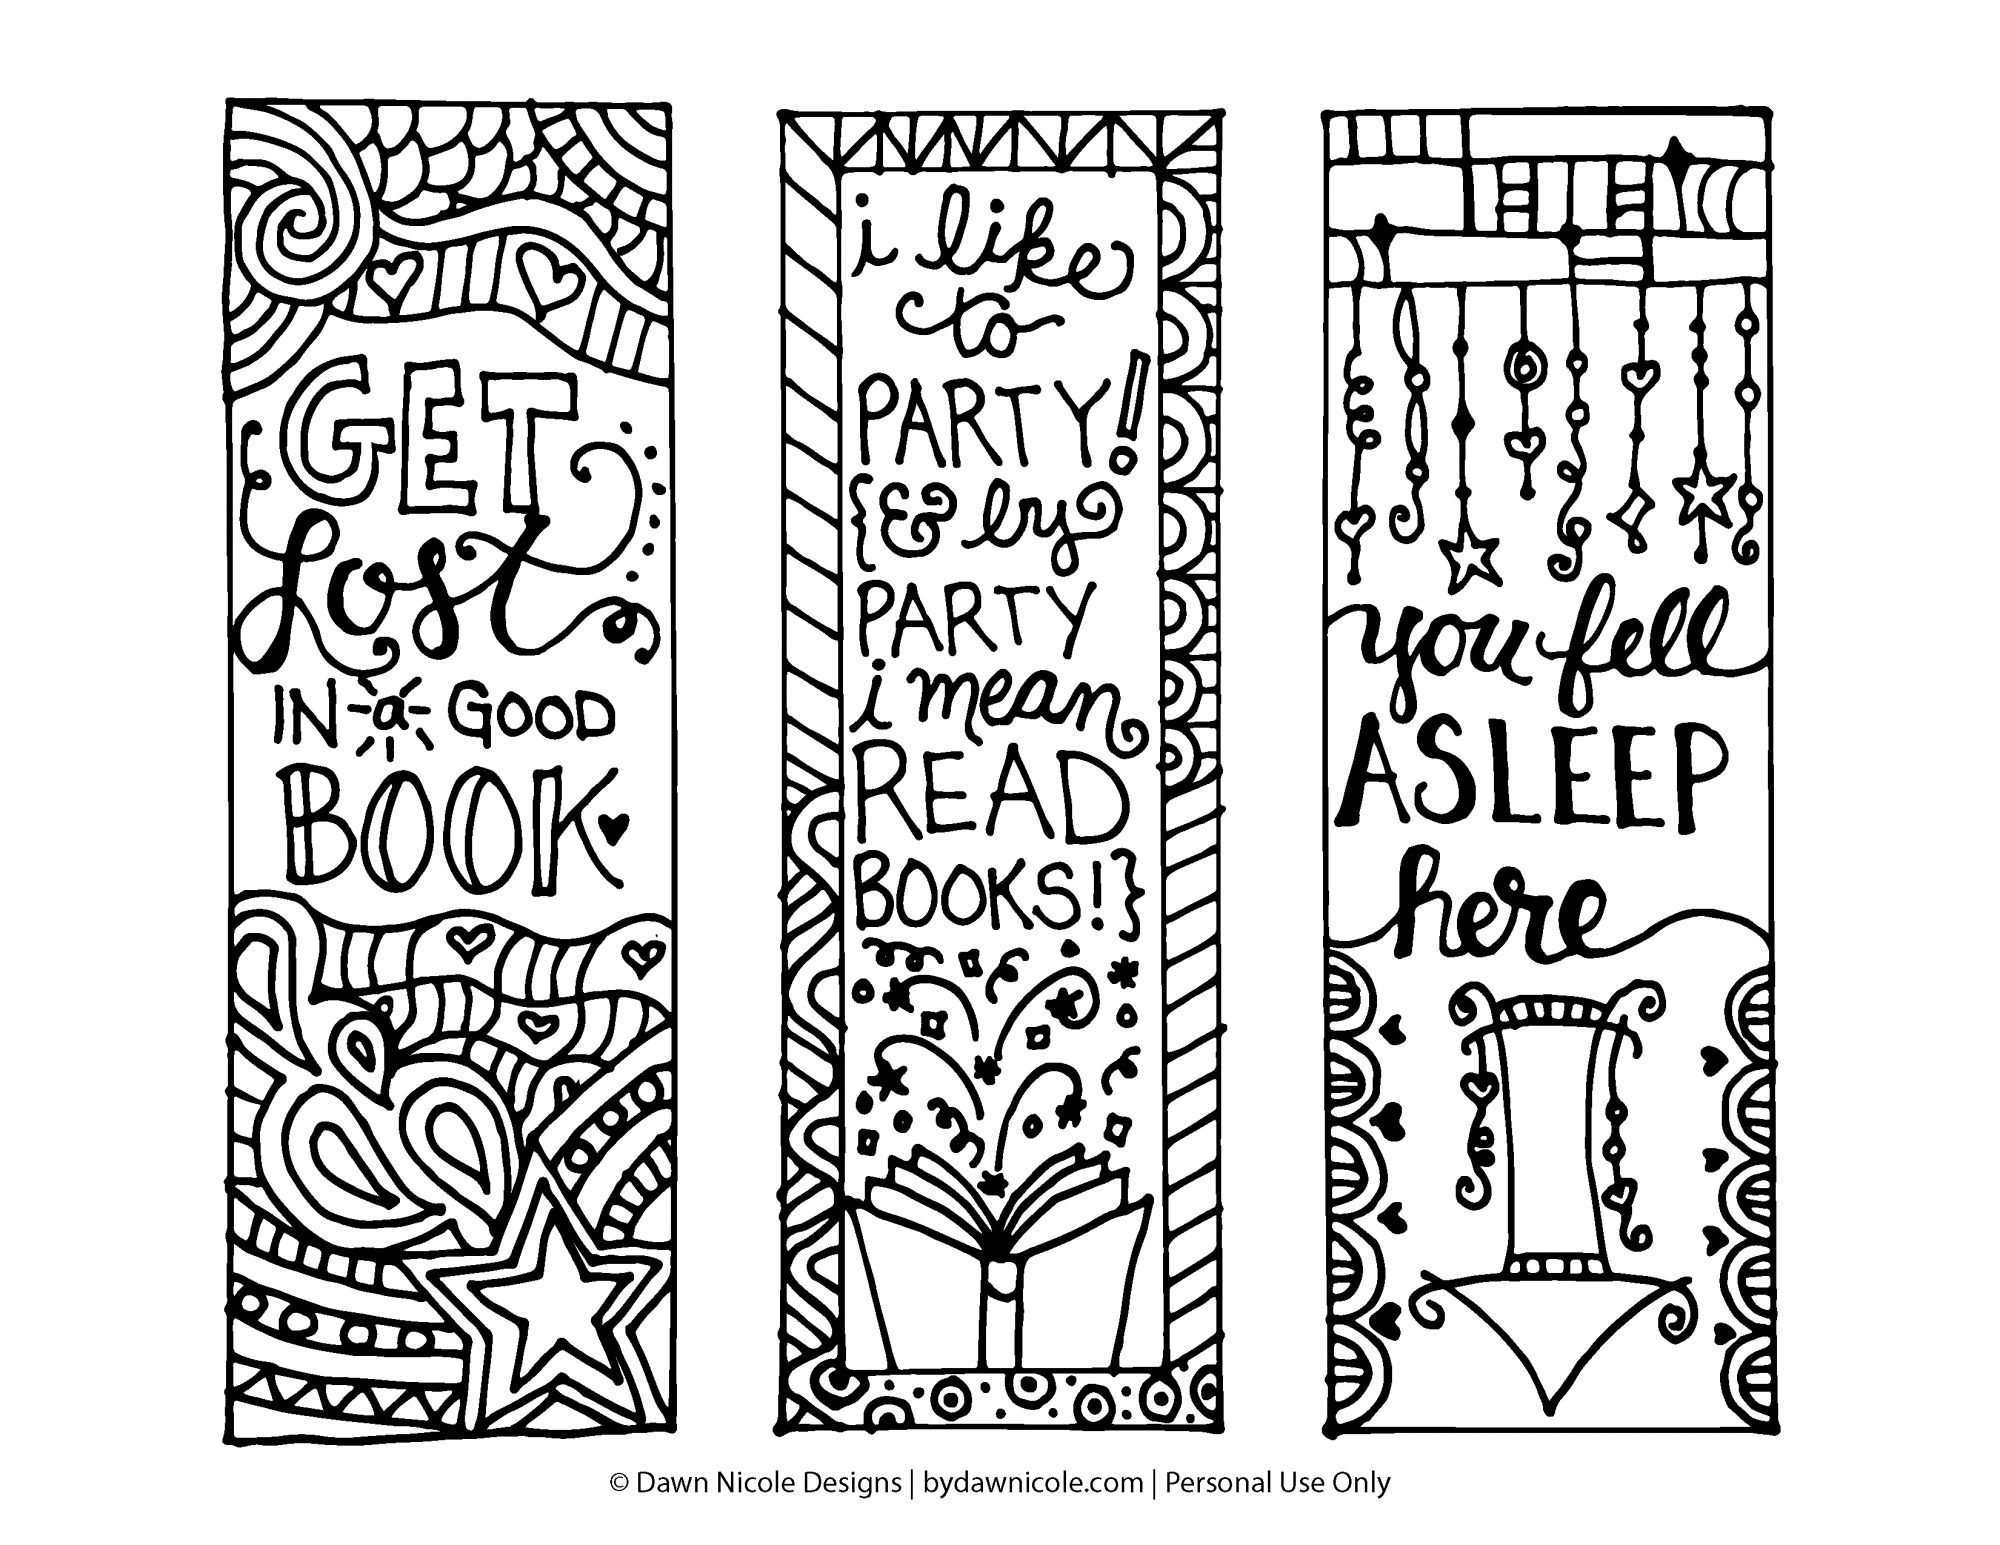 Free Printable Coloring Page Bookmarks | Dawn Nicole Designs® - Free Printable Bookmarks To Color